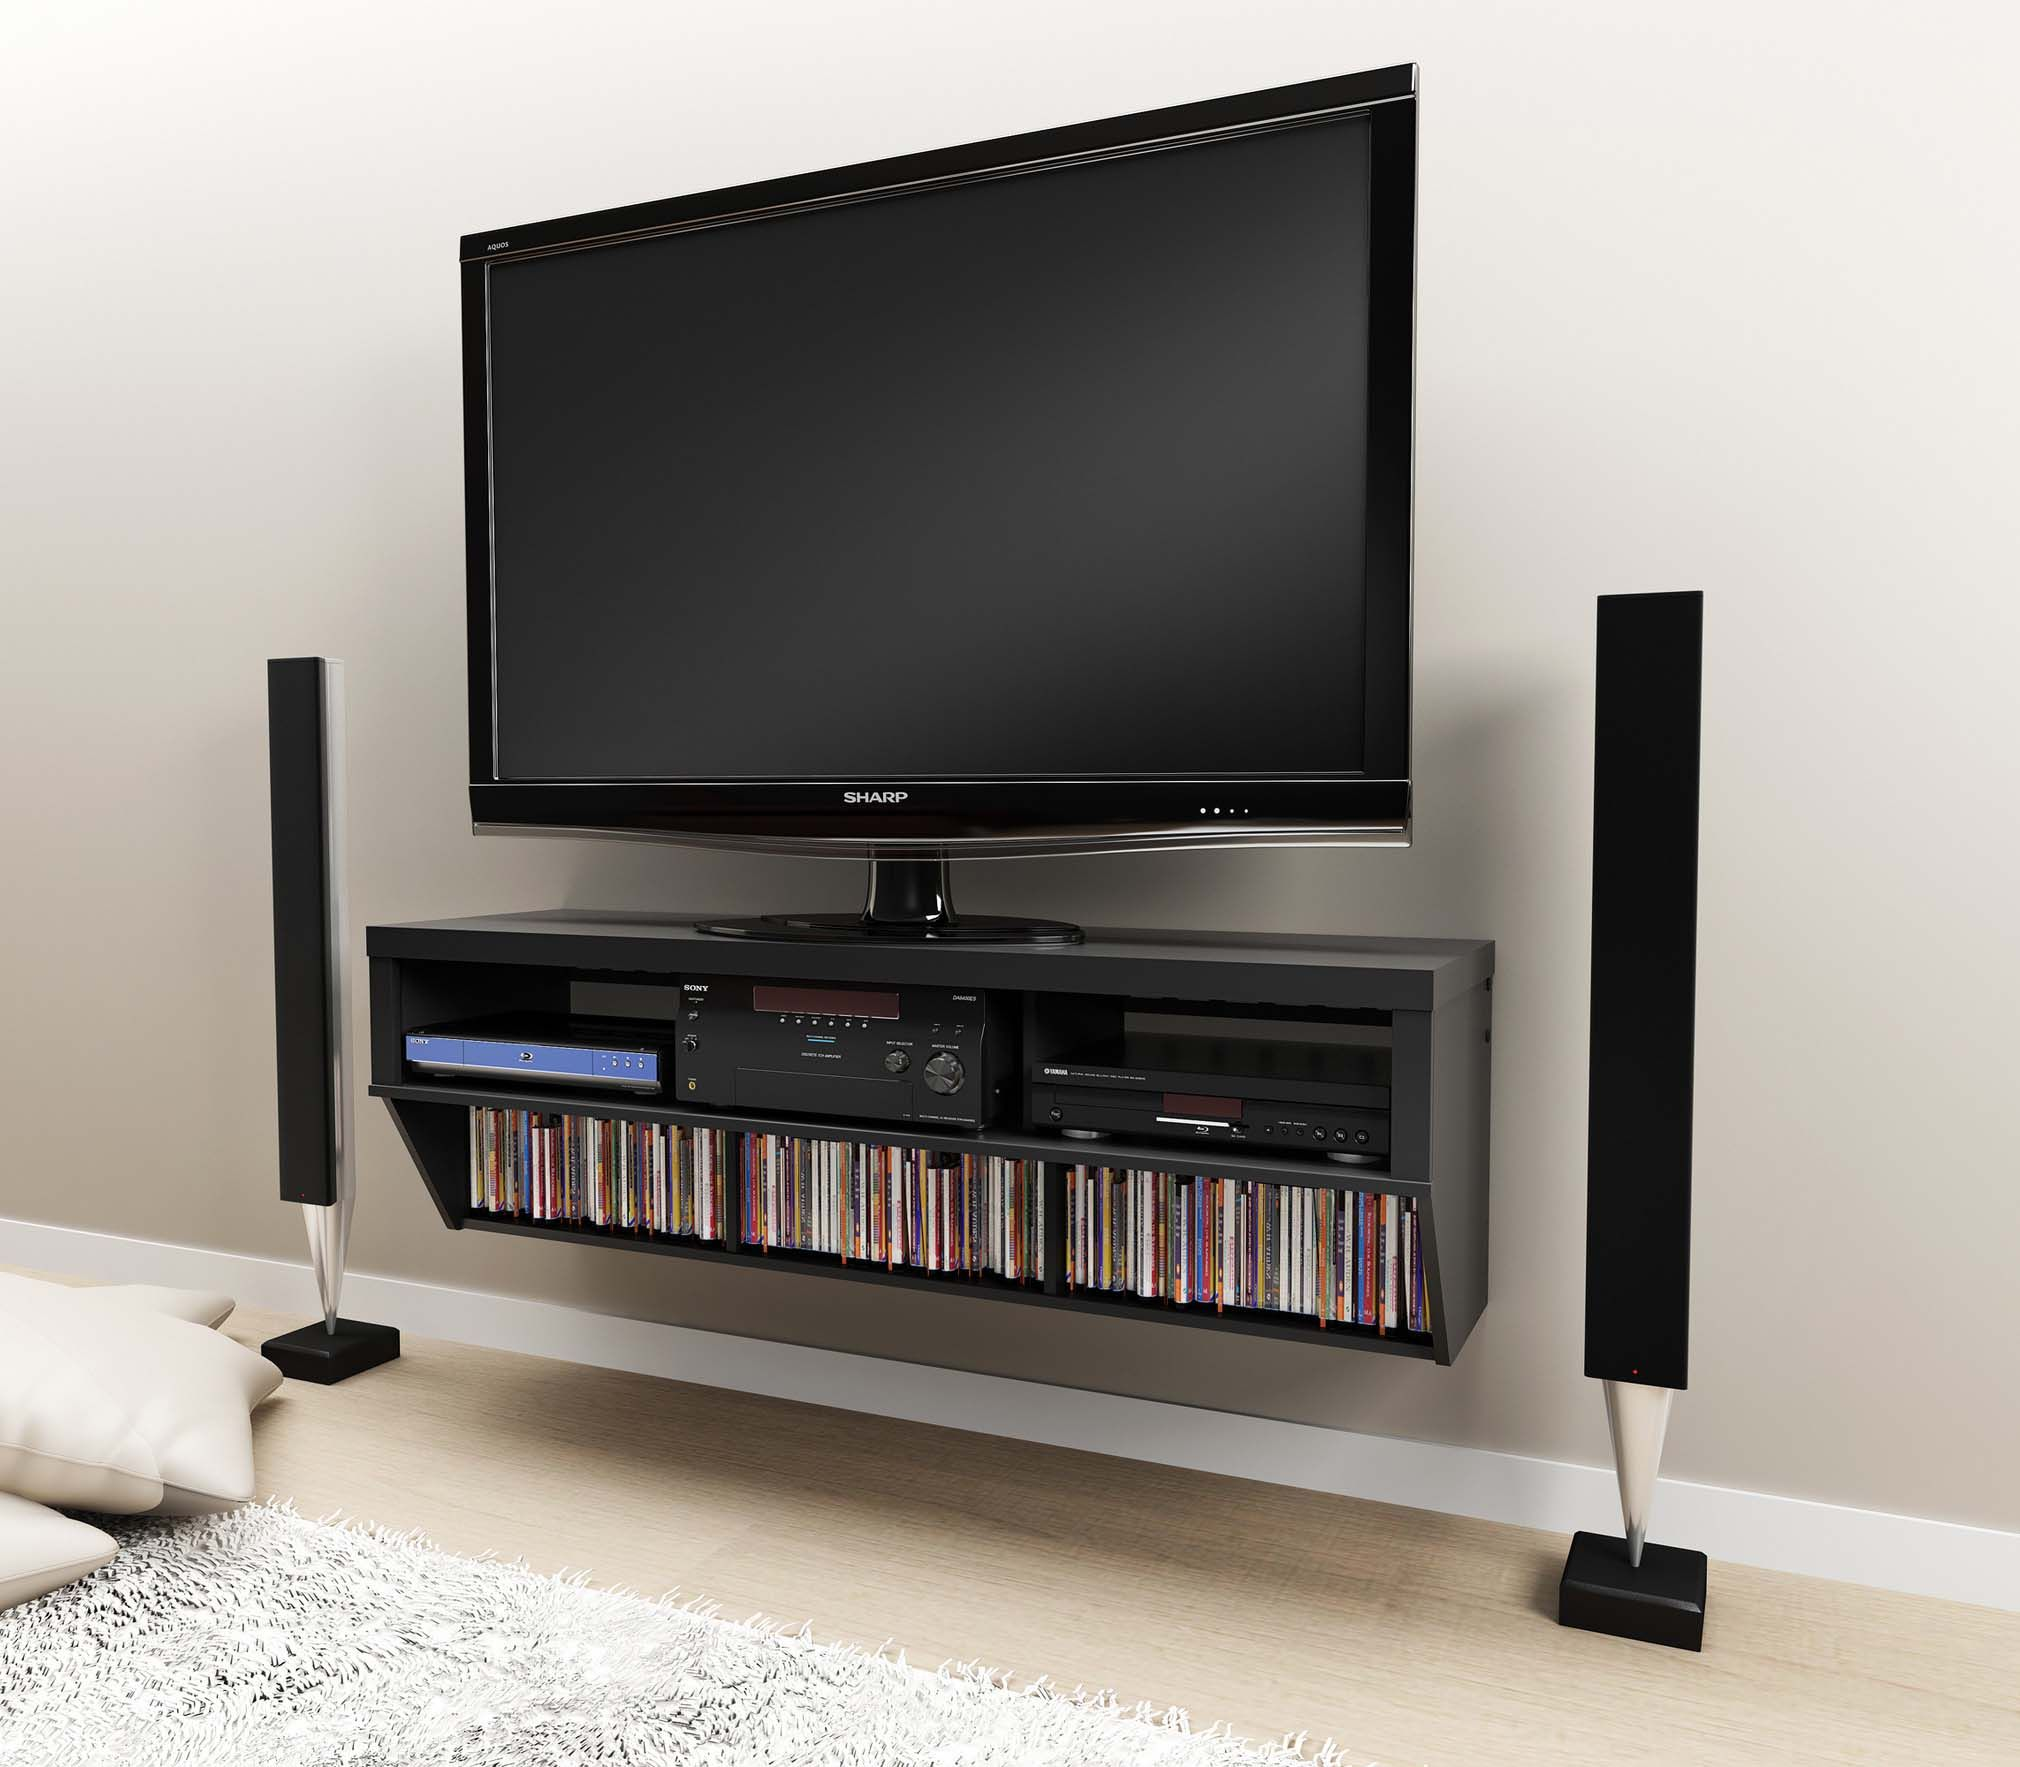 Details About 58 Altus Floating Wall Mounted Console Tv Stand W Cd